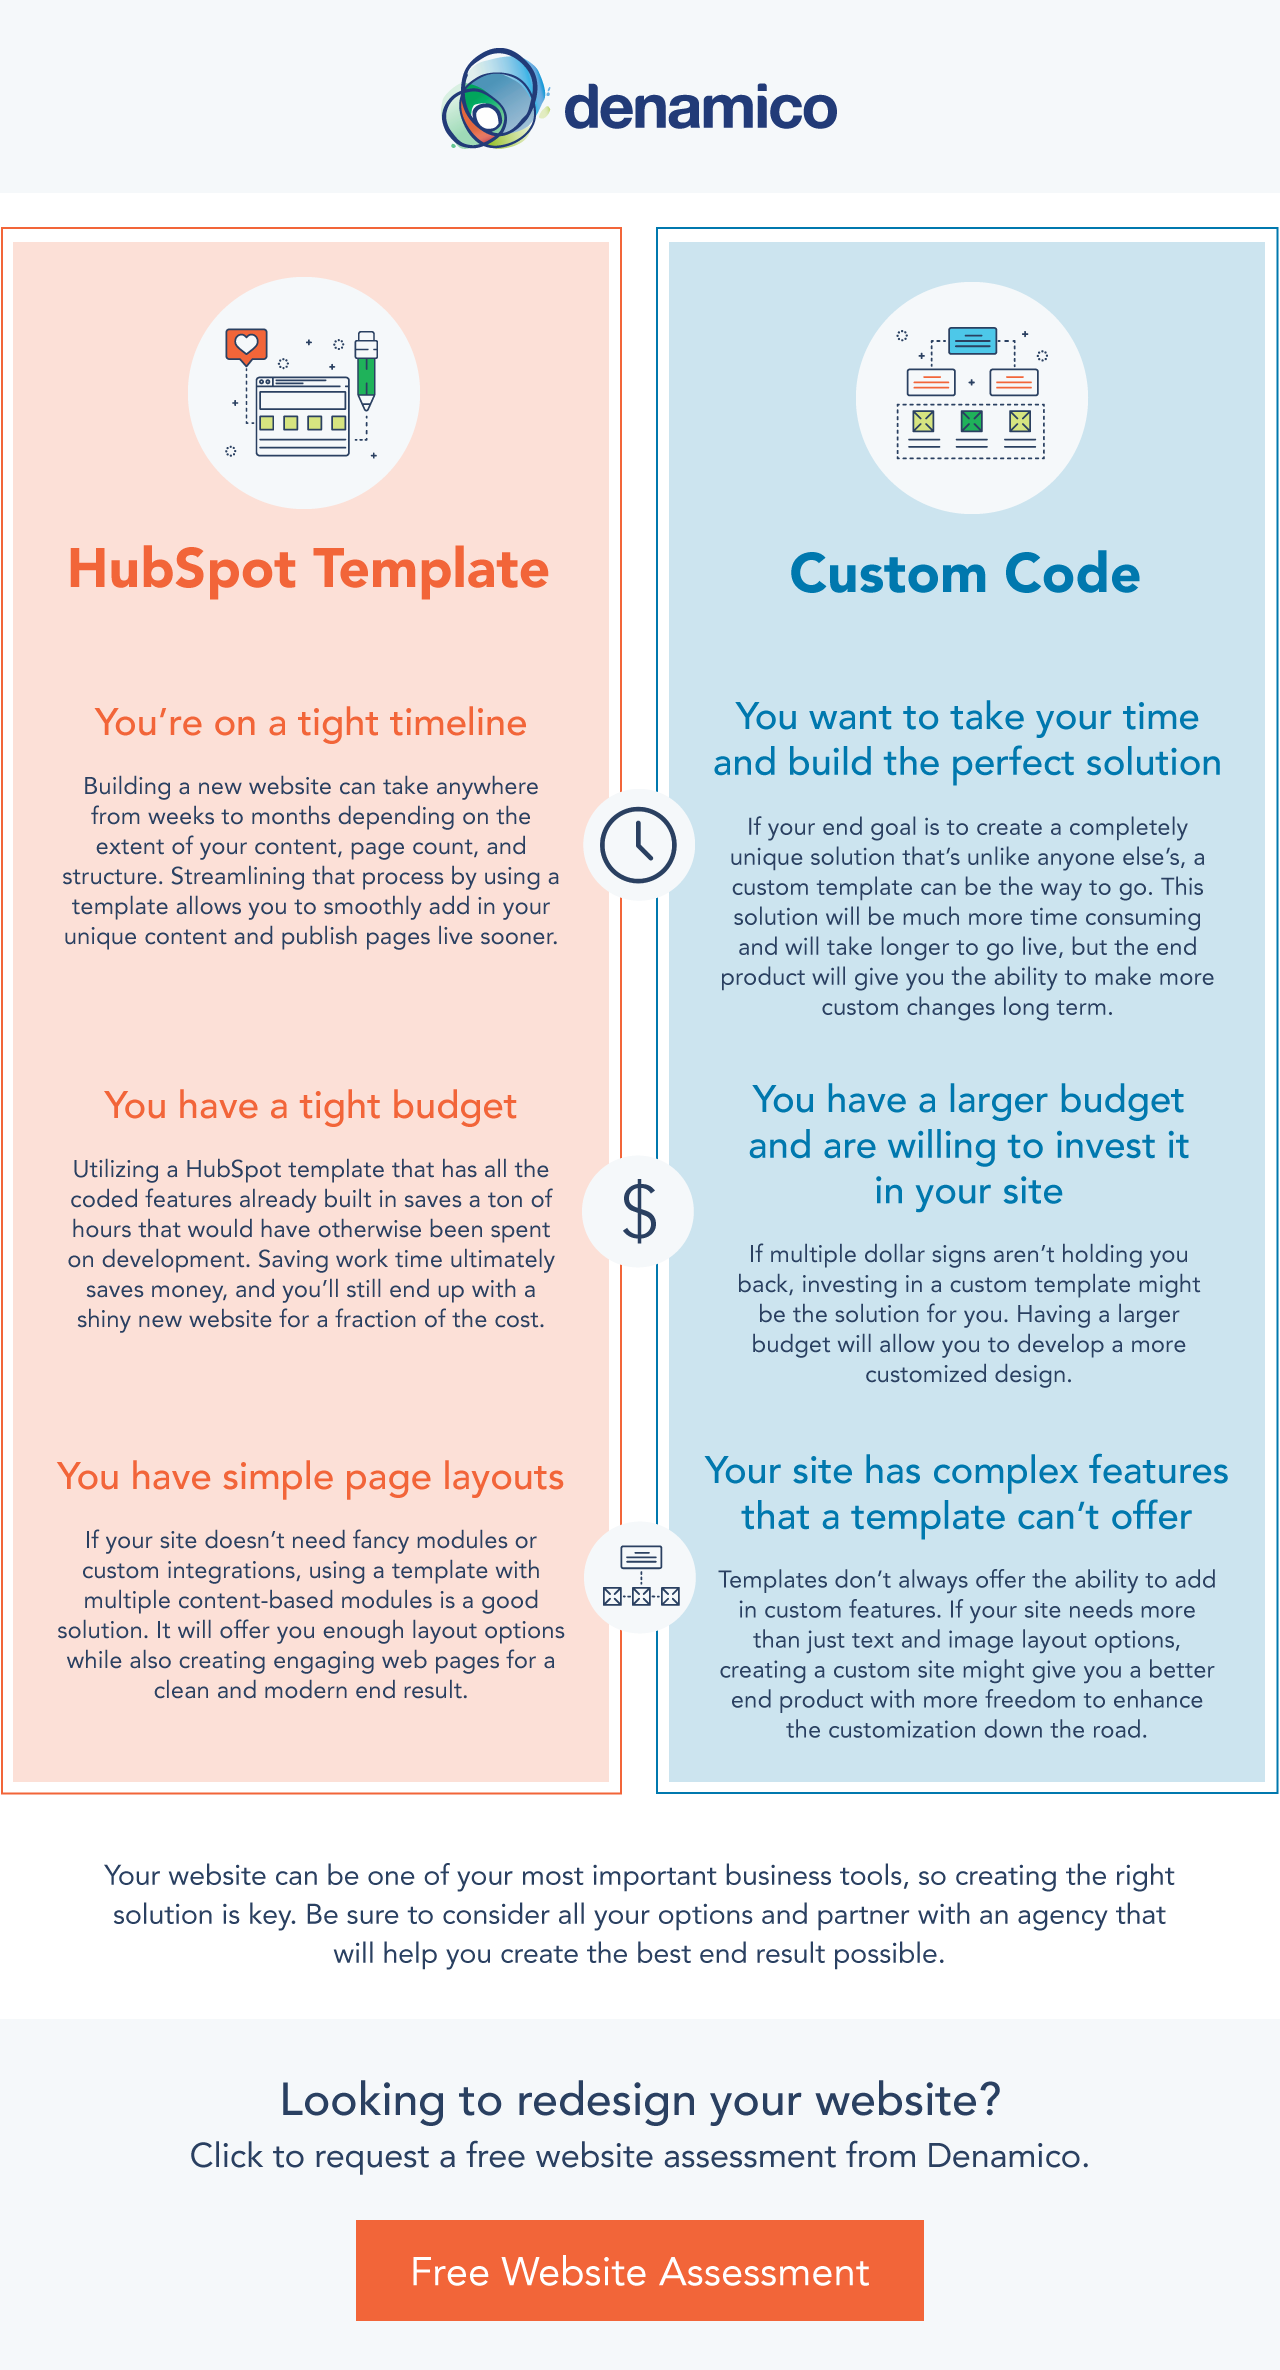 Template-vs-Custom-Infographic